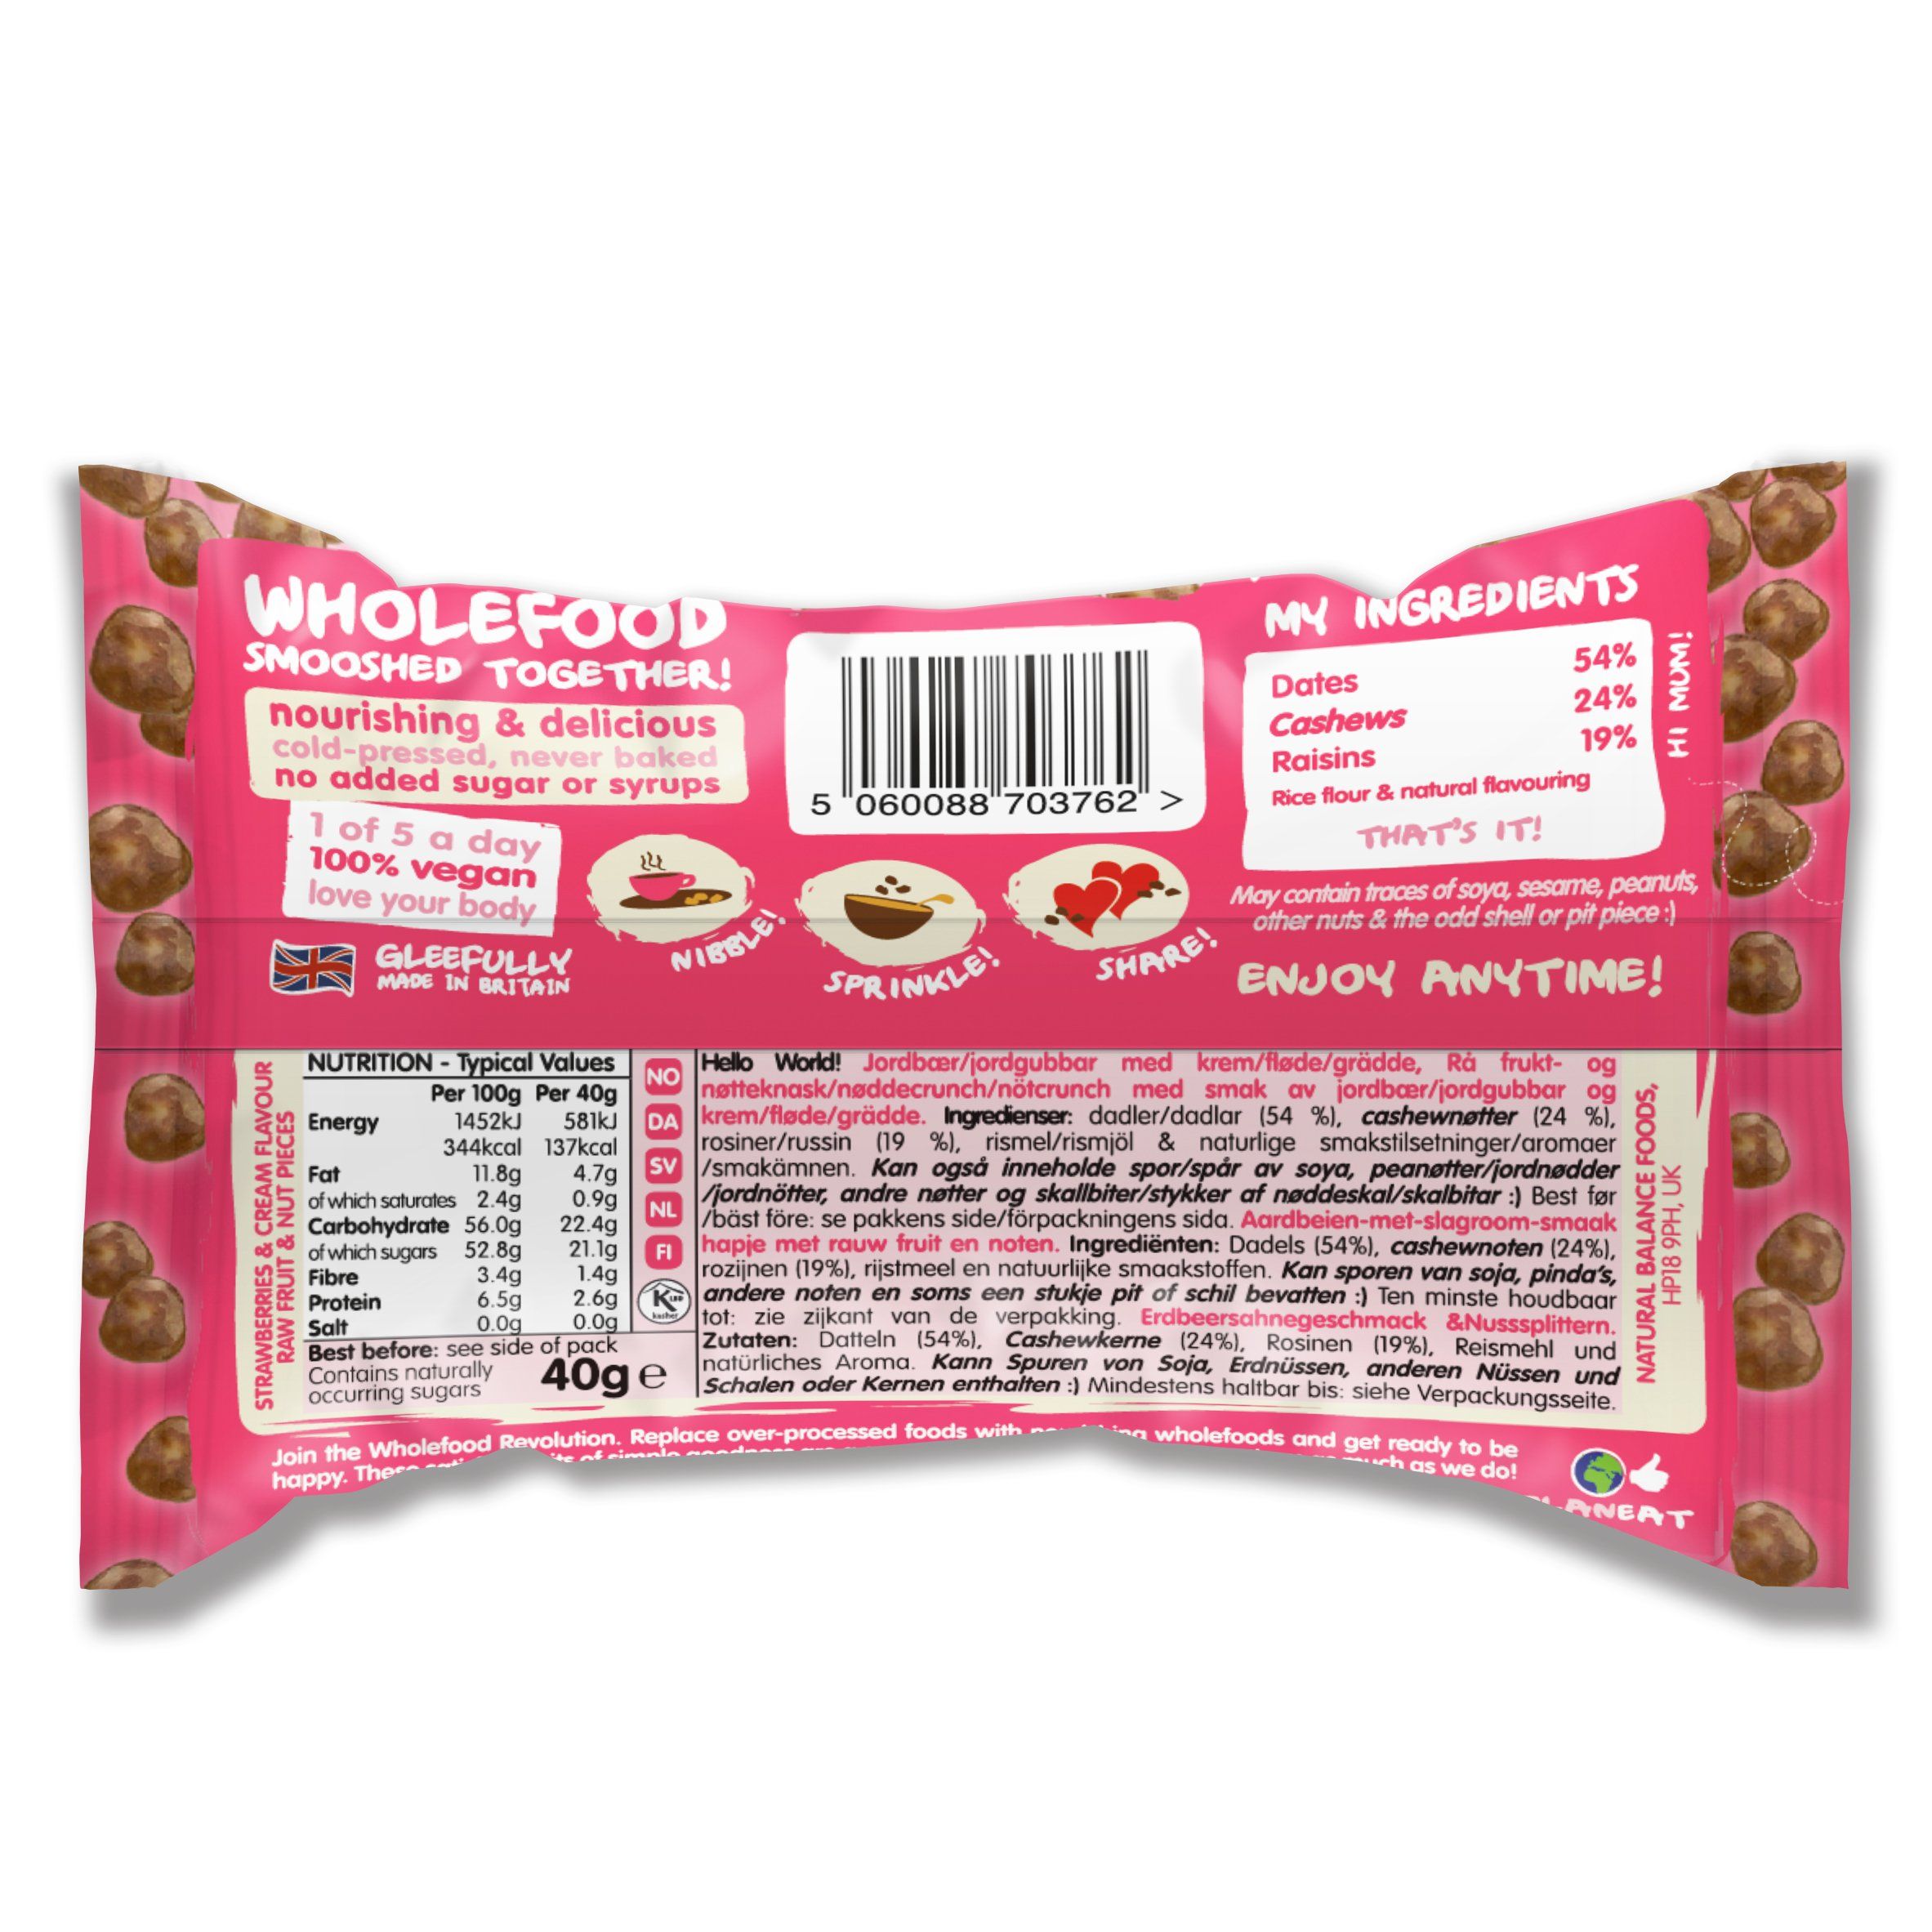 Nakd Nibbles & Bars Variety Pack, 8 Count by Nakd (Image #7)